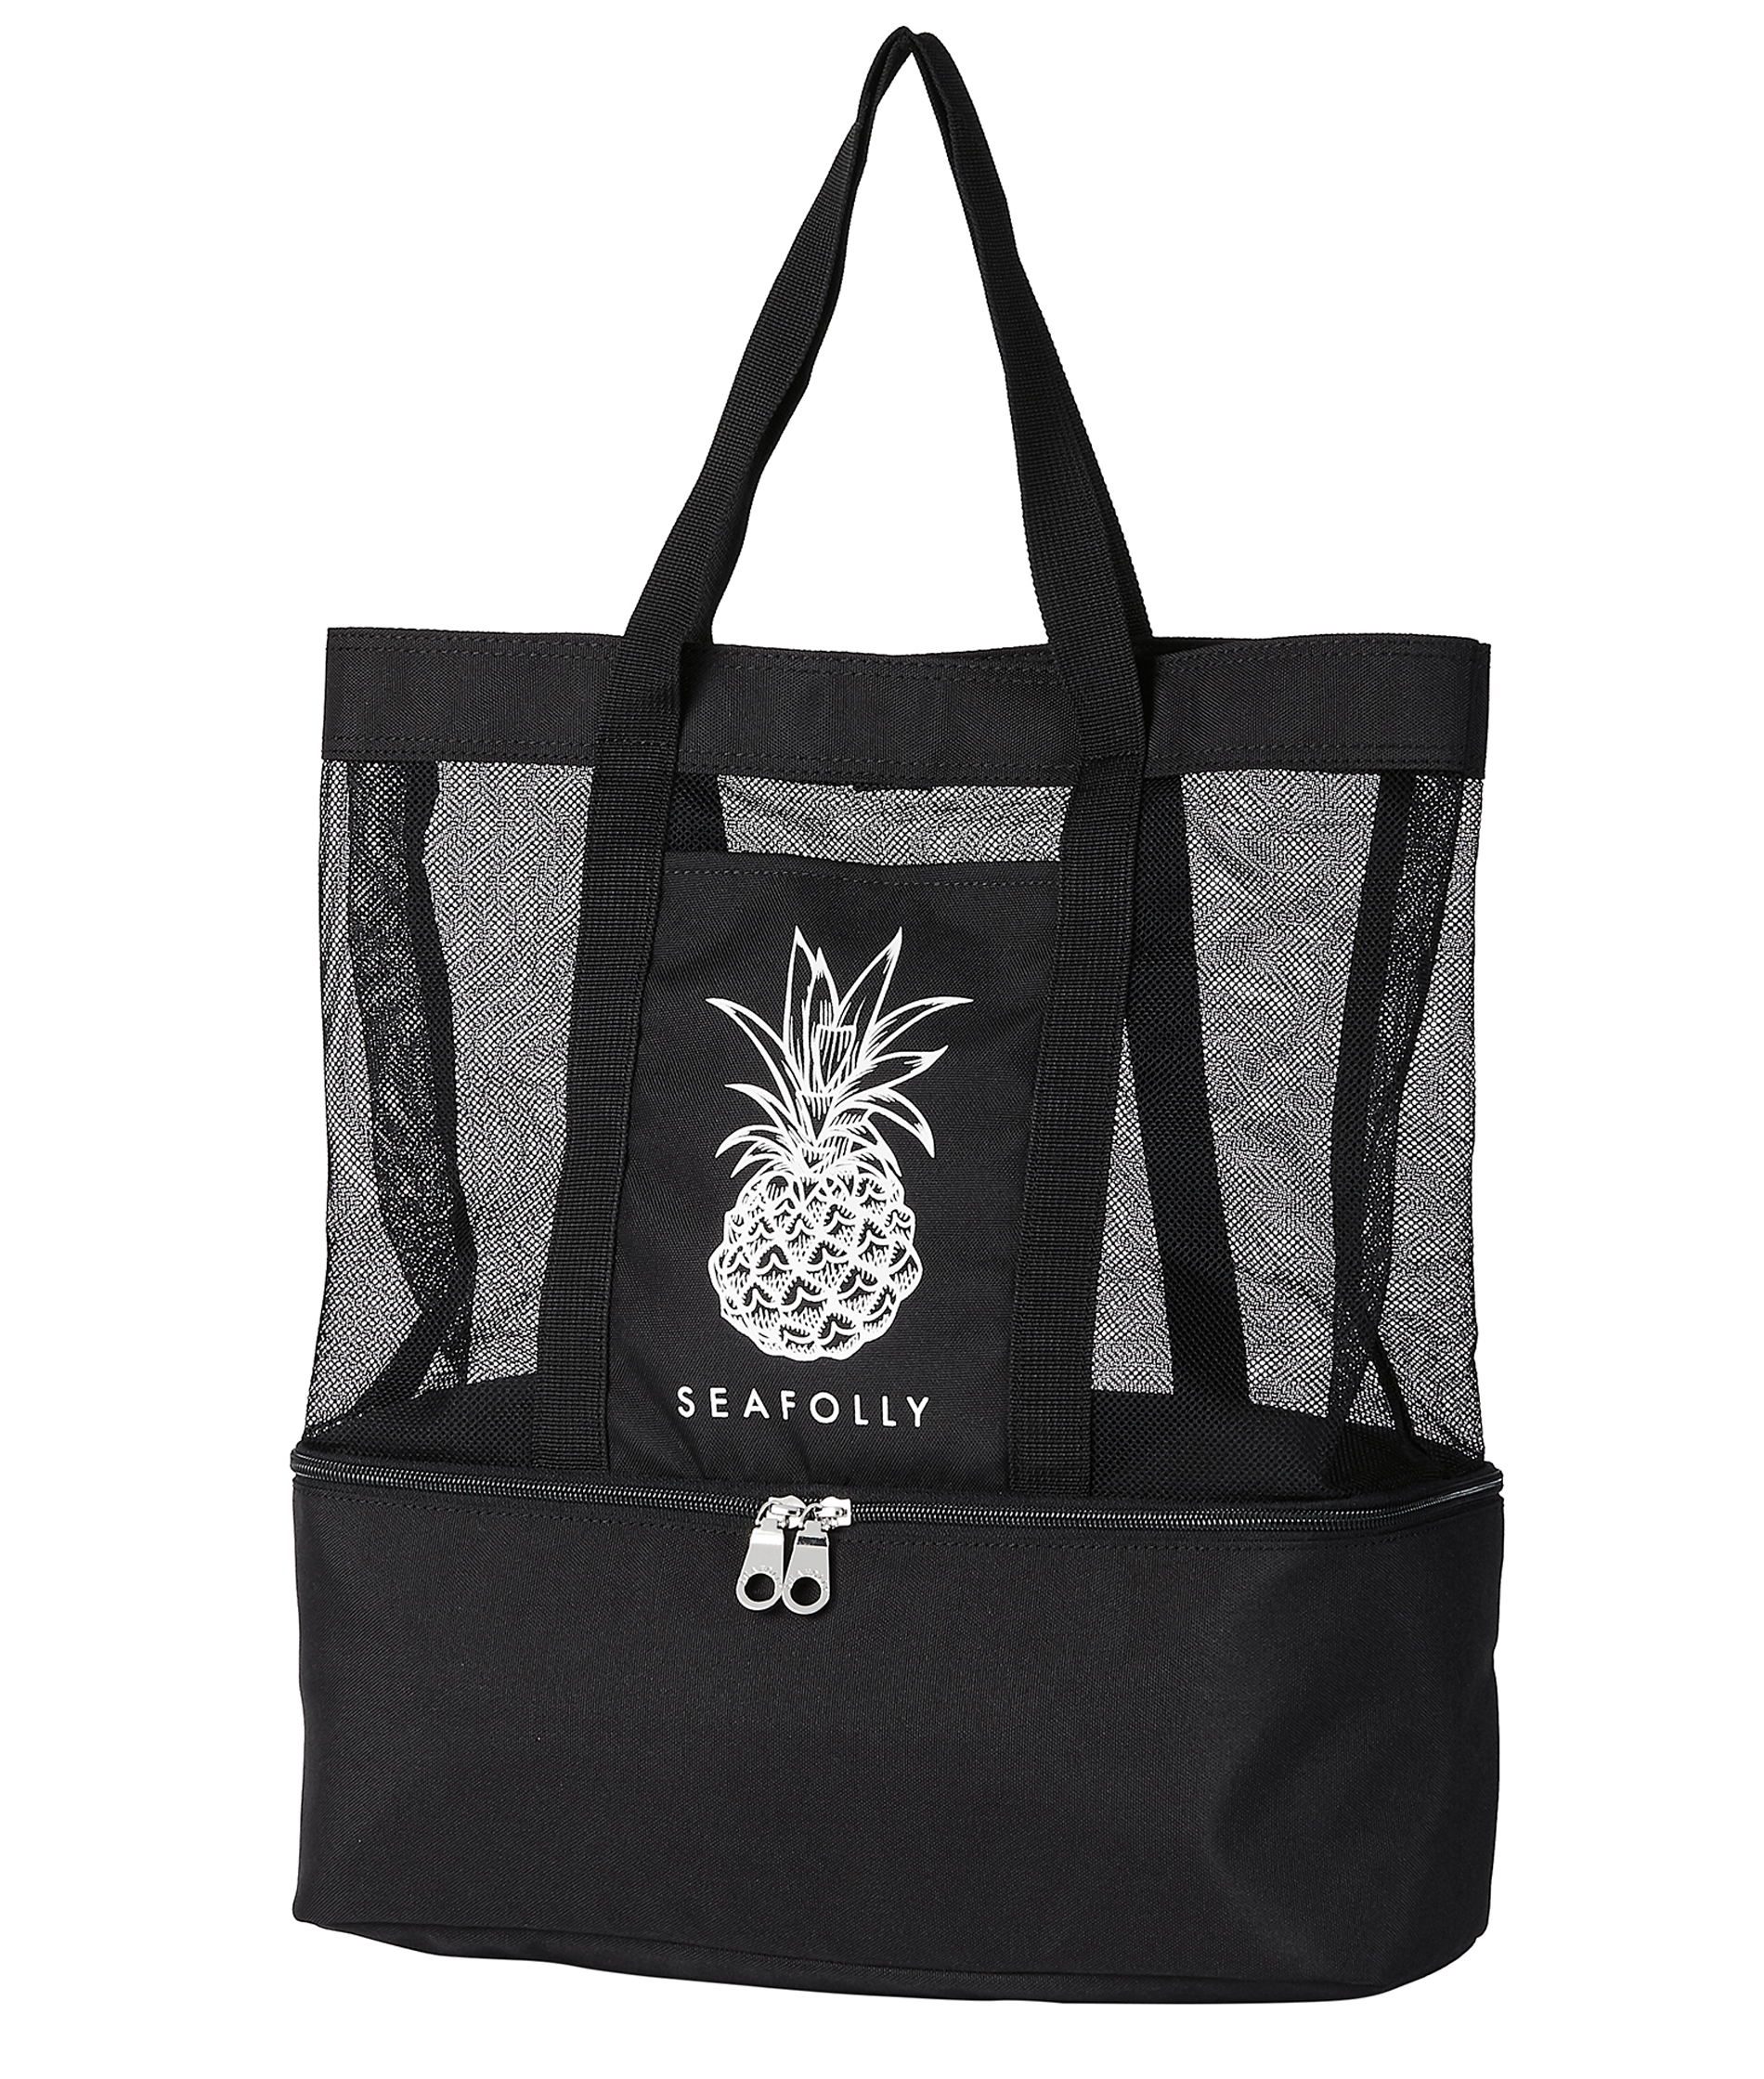 Seafolly Cooler Tote